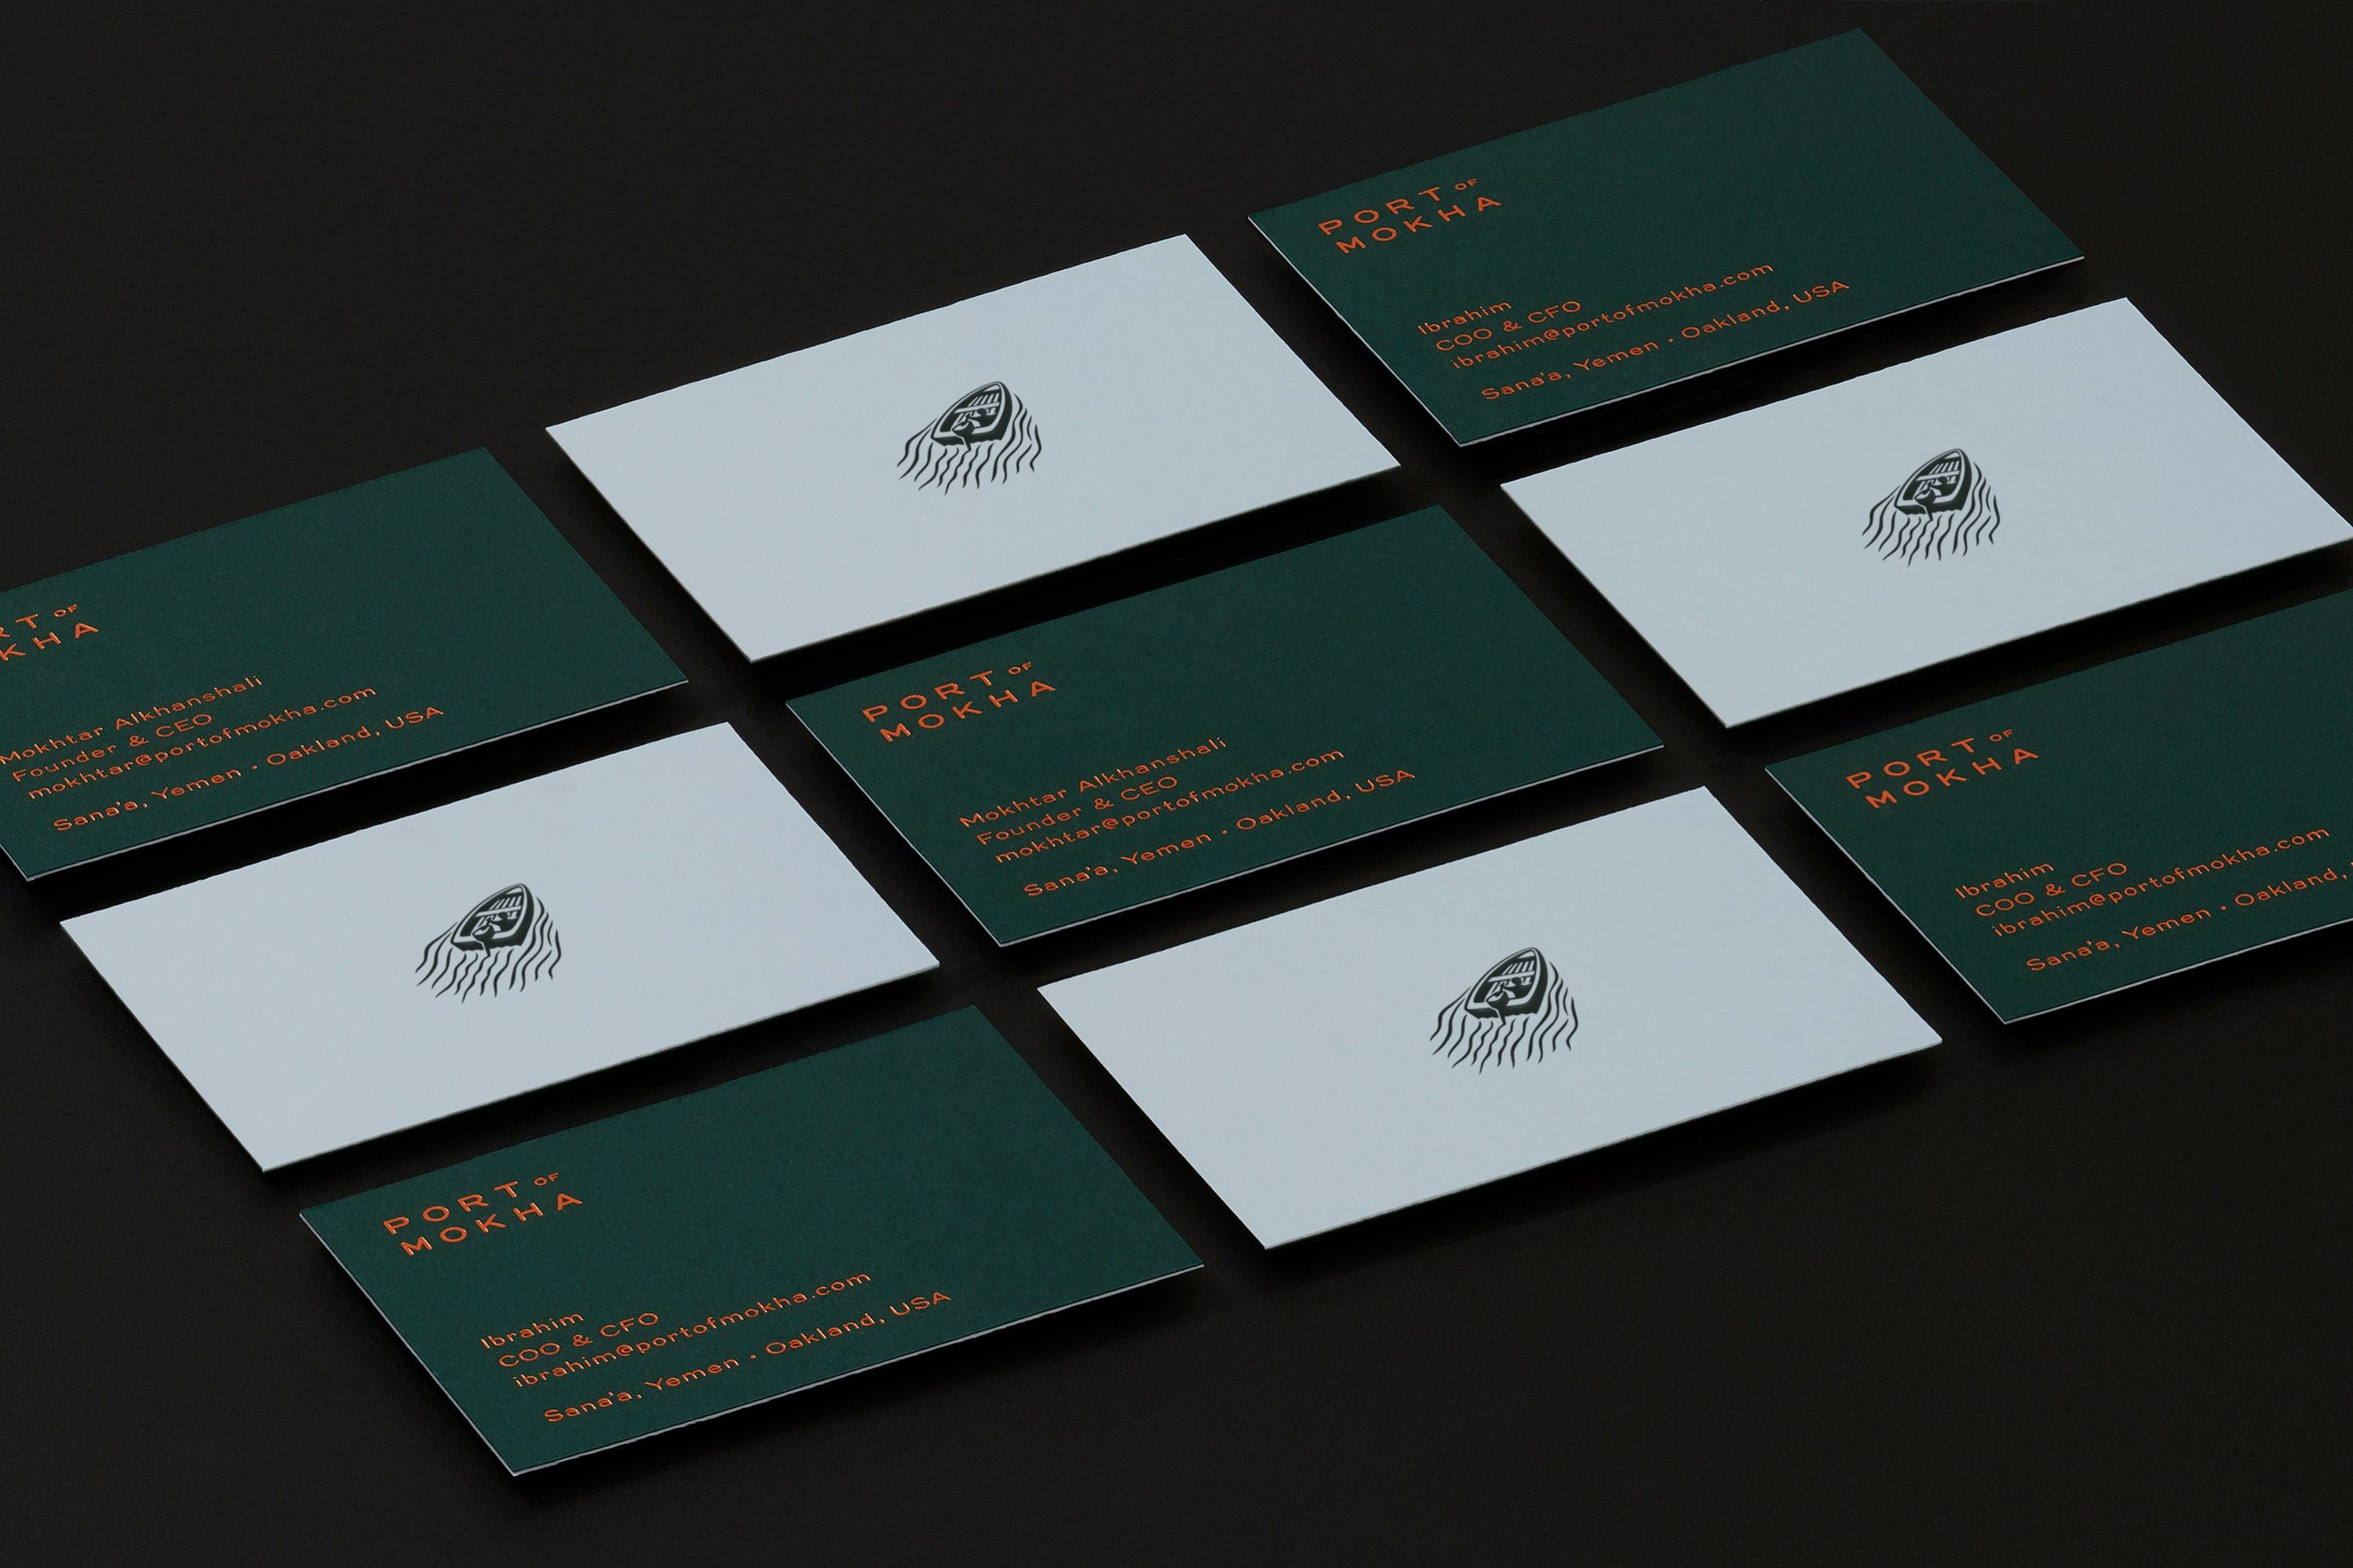 Business cards by Manual | Graphic Design | Pinterest | Business cards